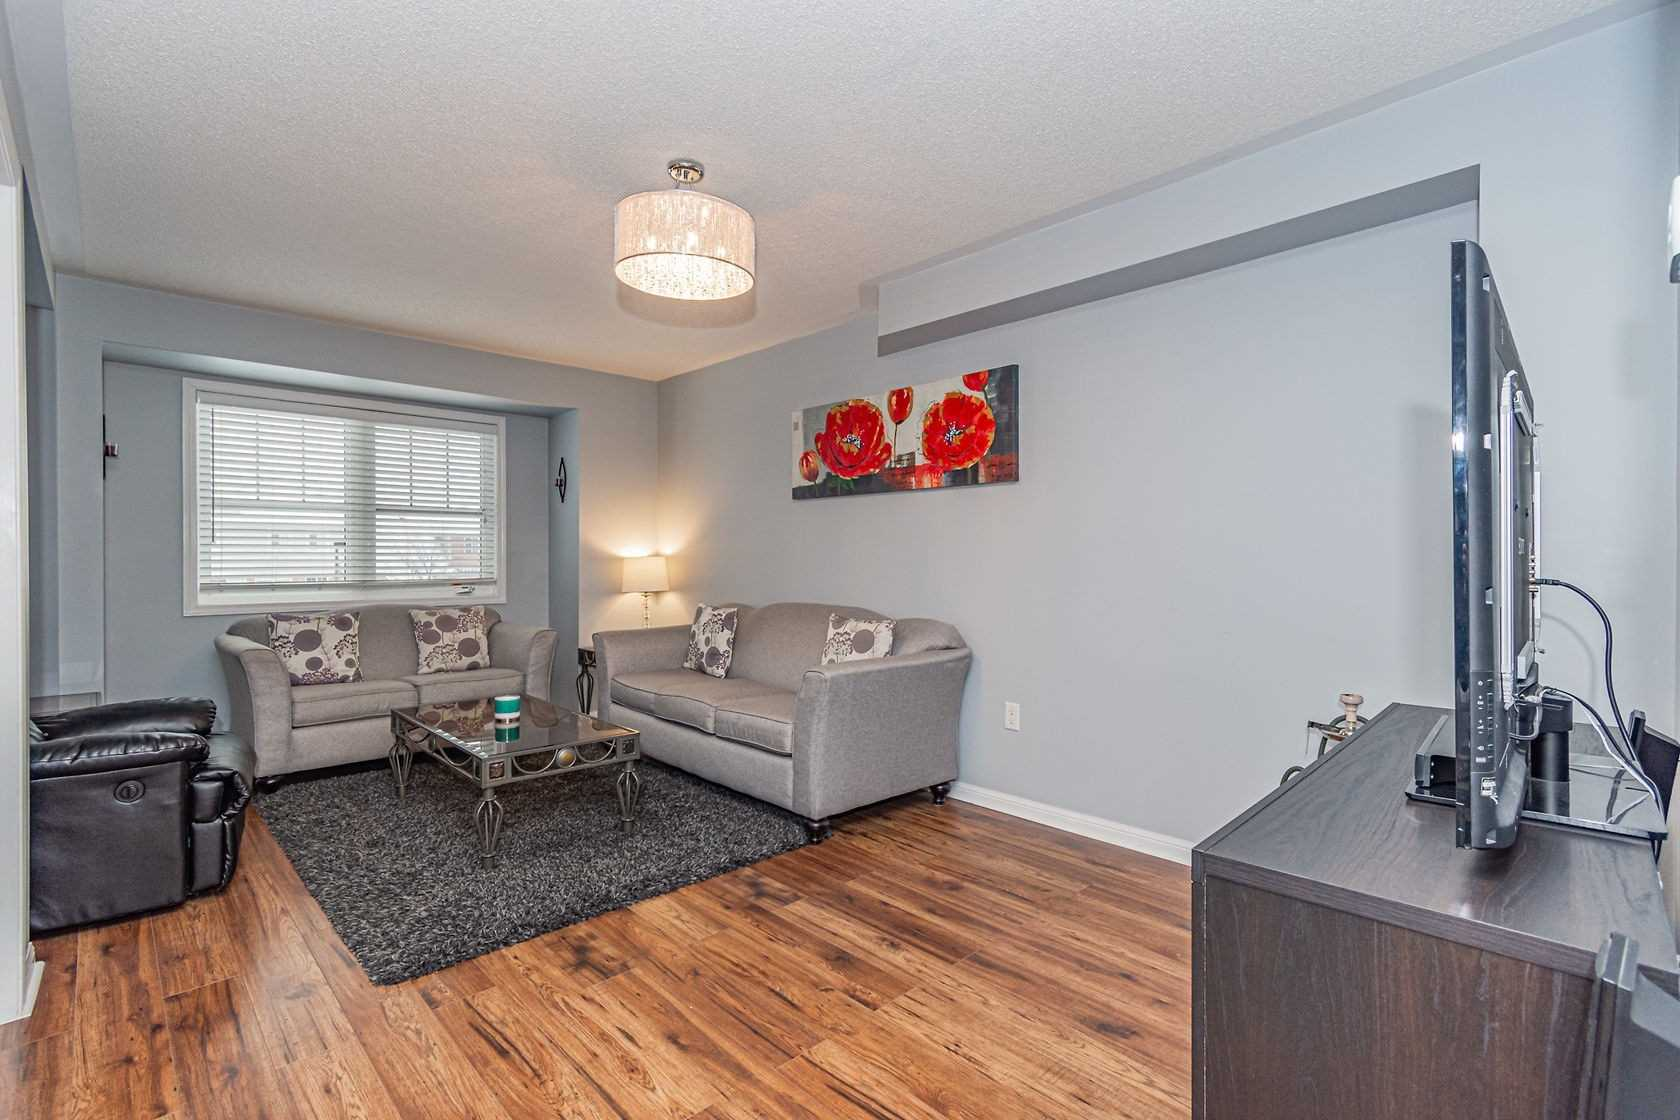 Image 7 of 20 showing inside of 3 Bedroom Att/Row/Twnhouse 3-Storey house for sale at 912 Ambroise Cres, Milton L9T0M2